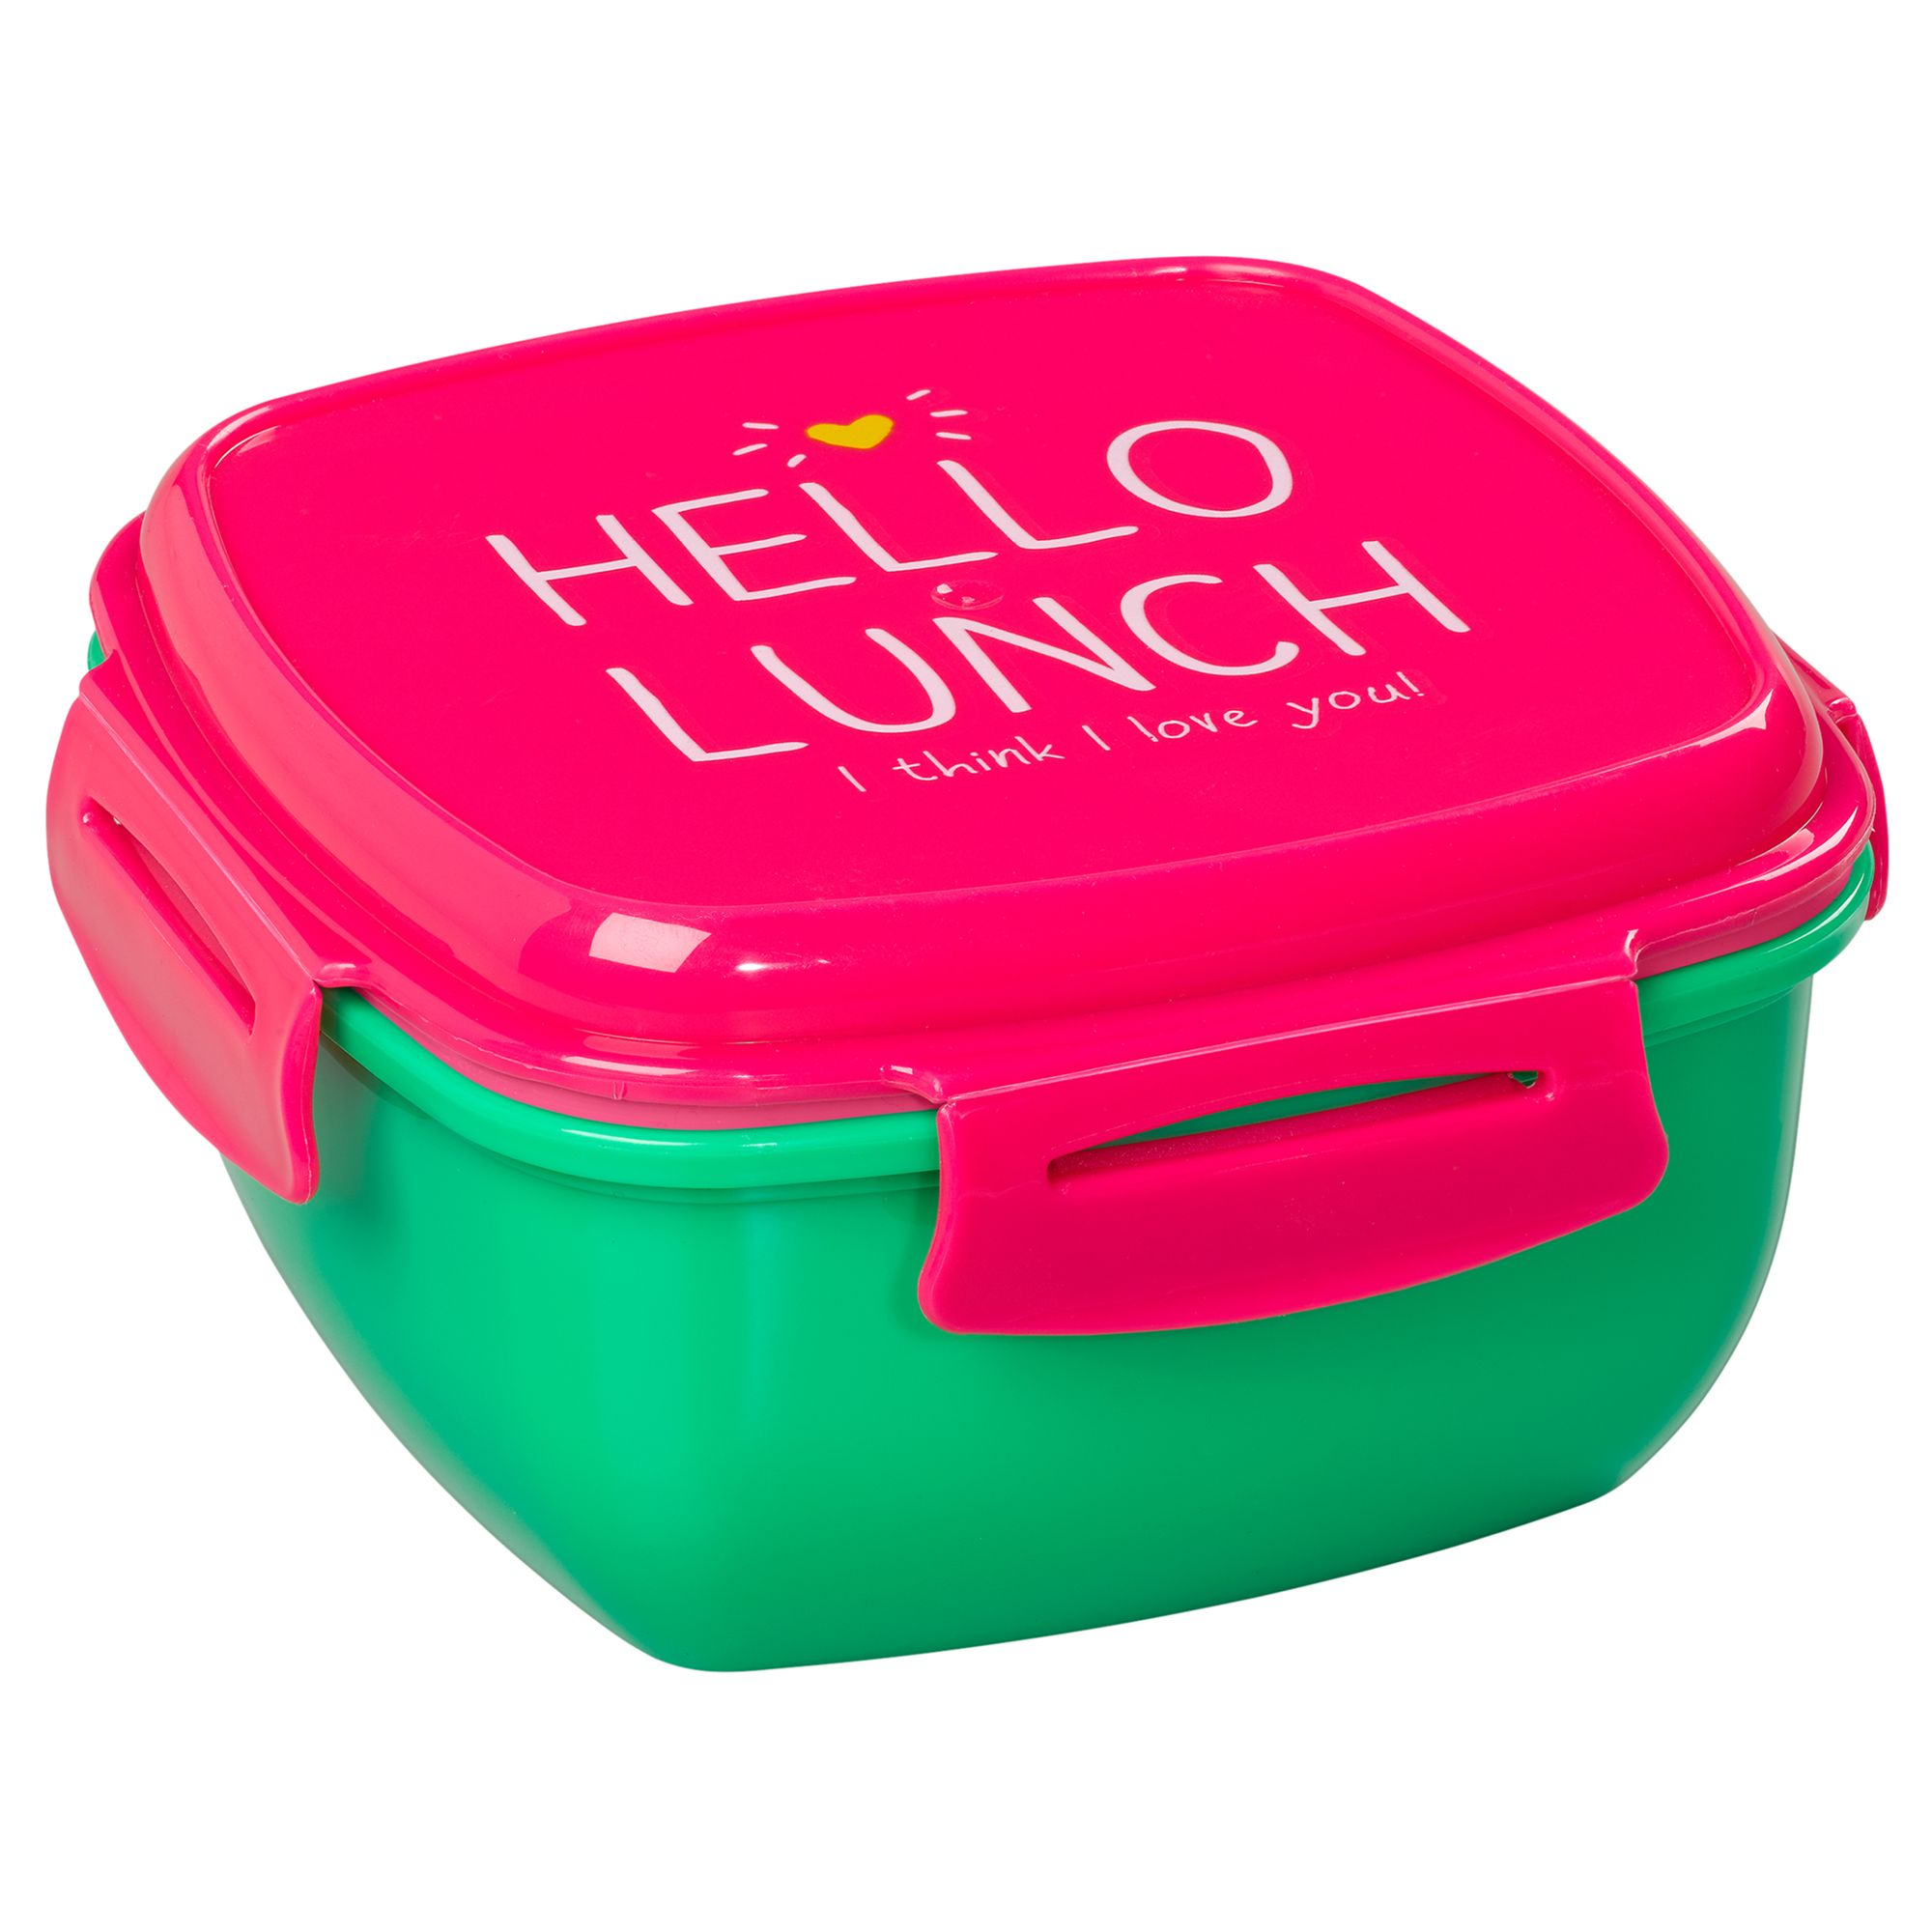 Happy Jackson Happy Jackson 'Hello Lunch' Lunchbox, Pink / Green